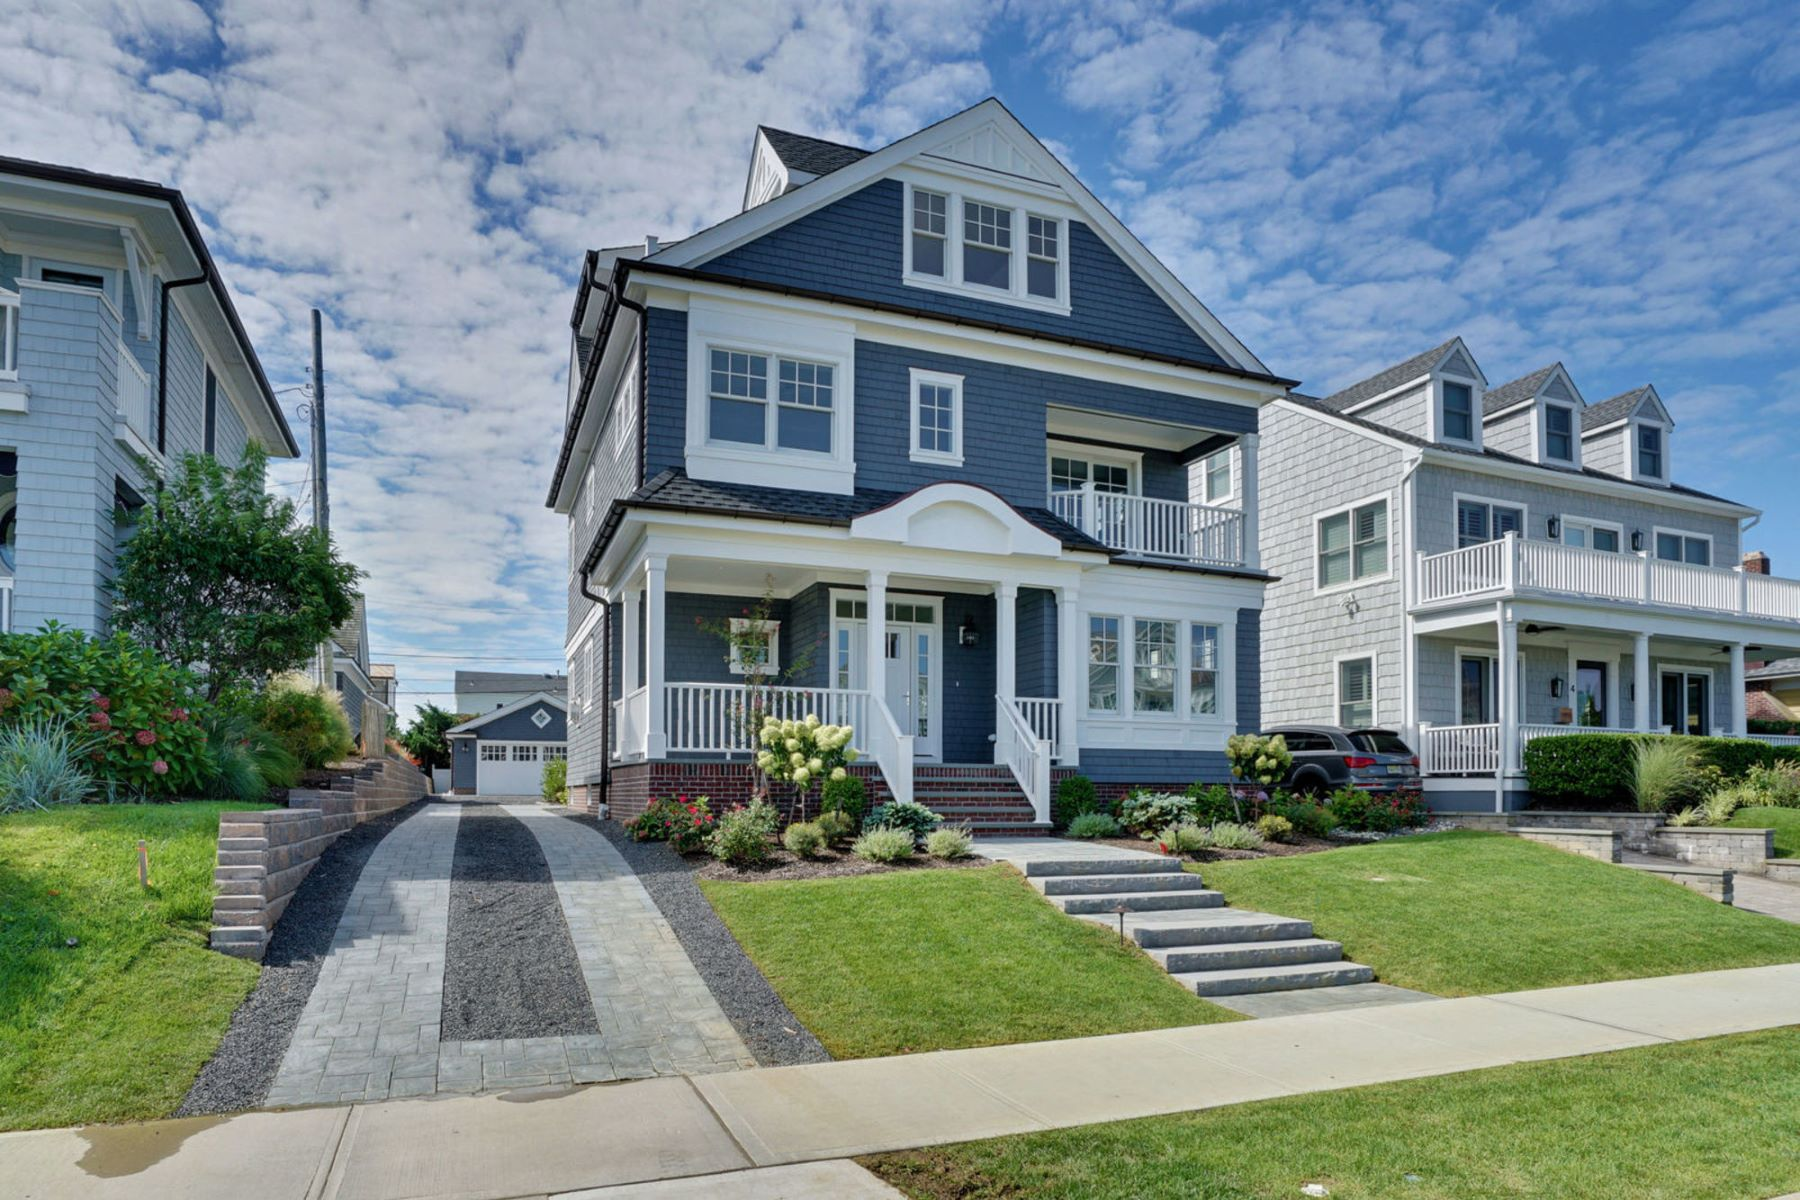 Single Family Homes for Active at Refined Yet Casual 2 Beacon Boulevard Sea Girt, New Jersey 08750 United States